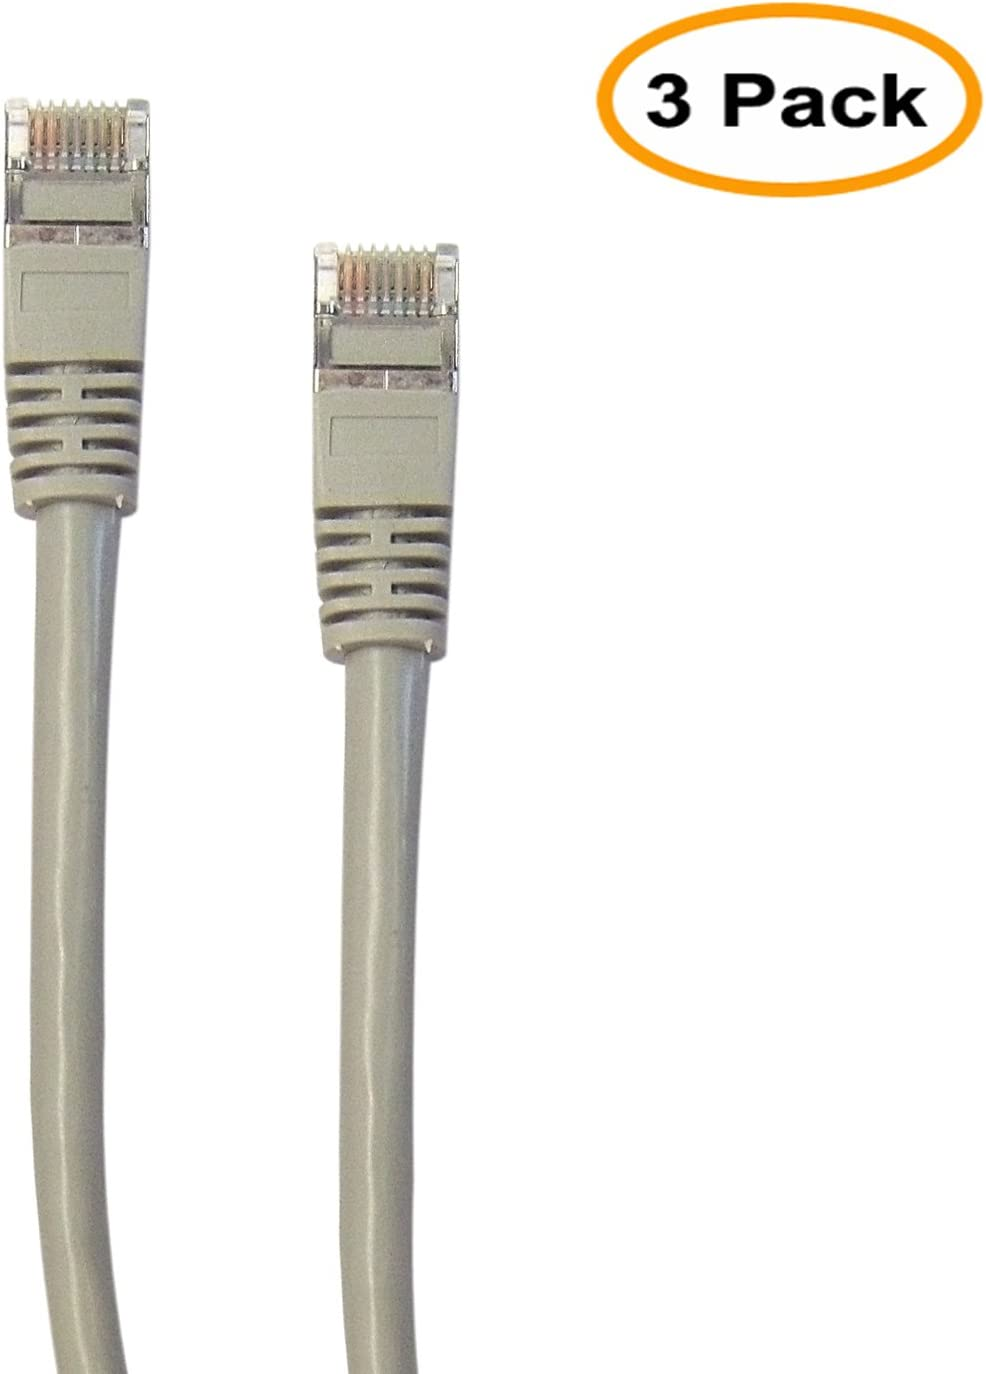 Shielded Cat5e Networking Ethernet Patch Cable 14 FT 14 Feet//4.2 Meters 3 Pack 350Mhz, 4.2M Cat 5e Snagless Molded Boot Cable for PC // Router // PS4 // XBOX // Modem Gray ED696726